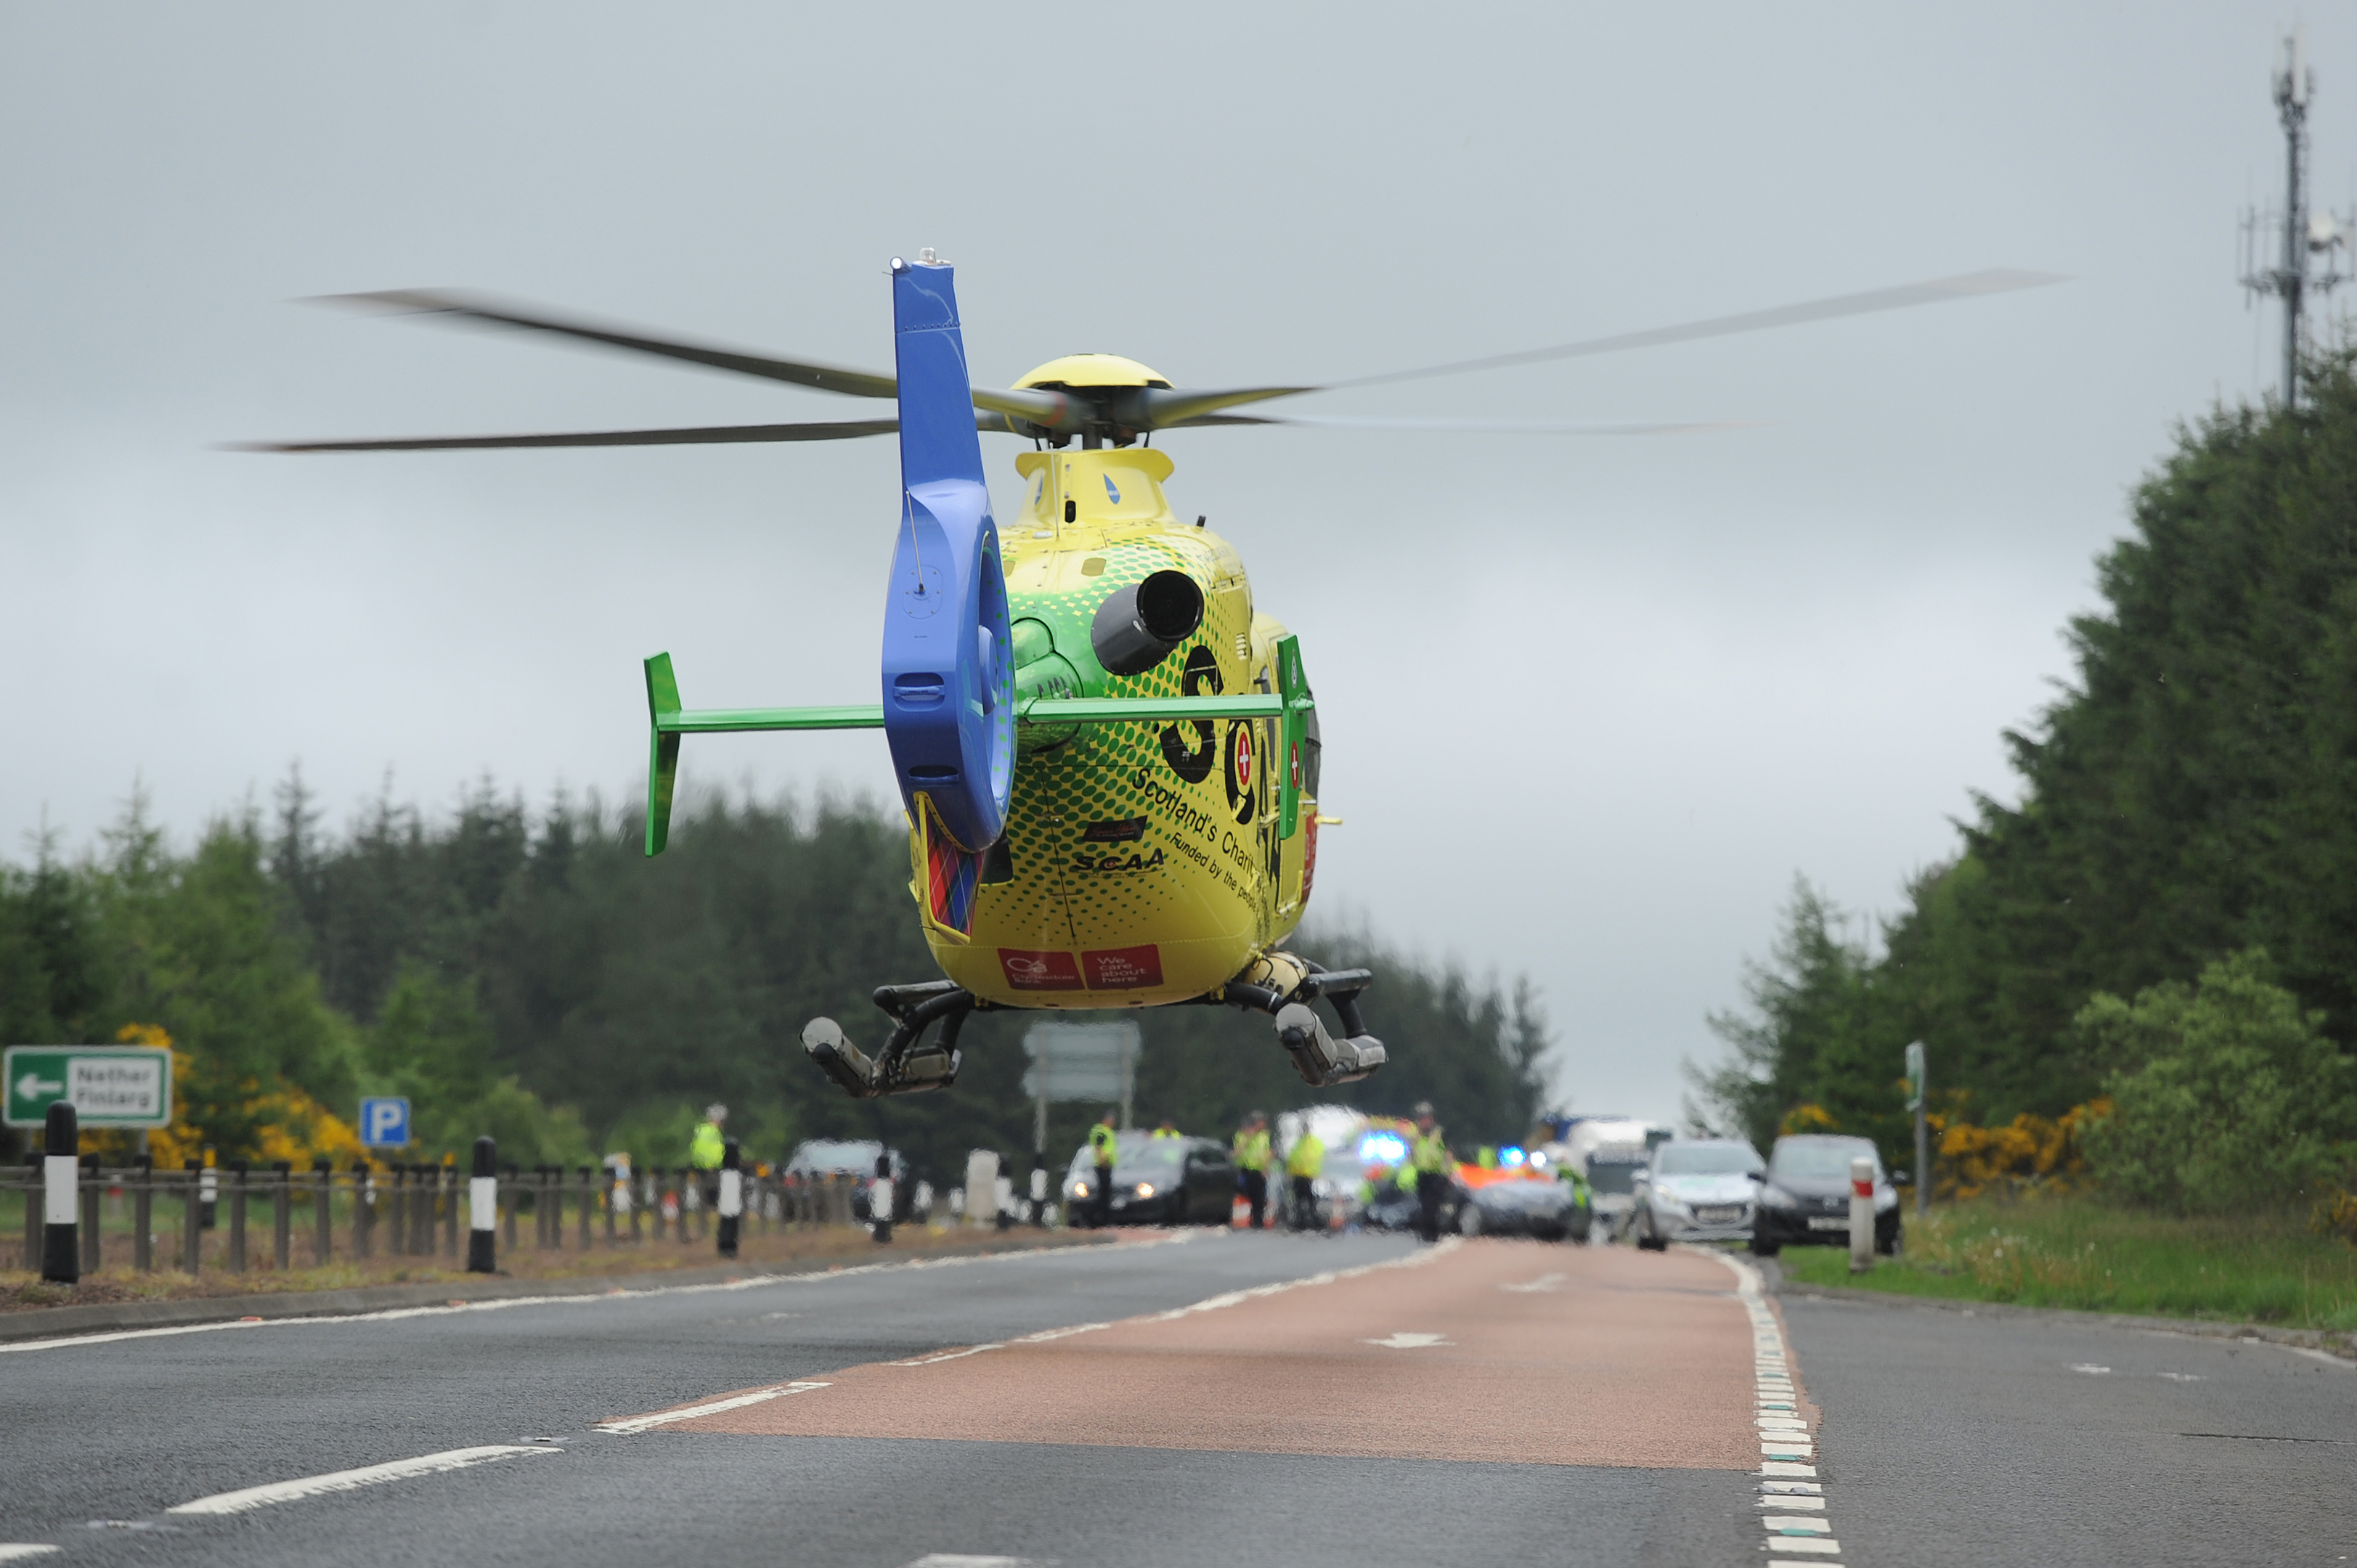 The Air Ambulance takes off from the scene.